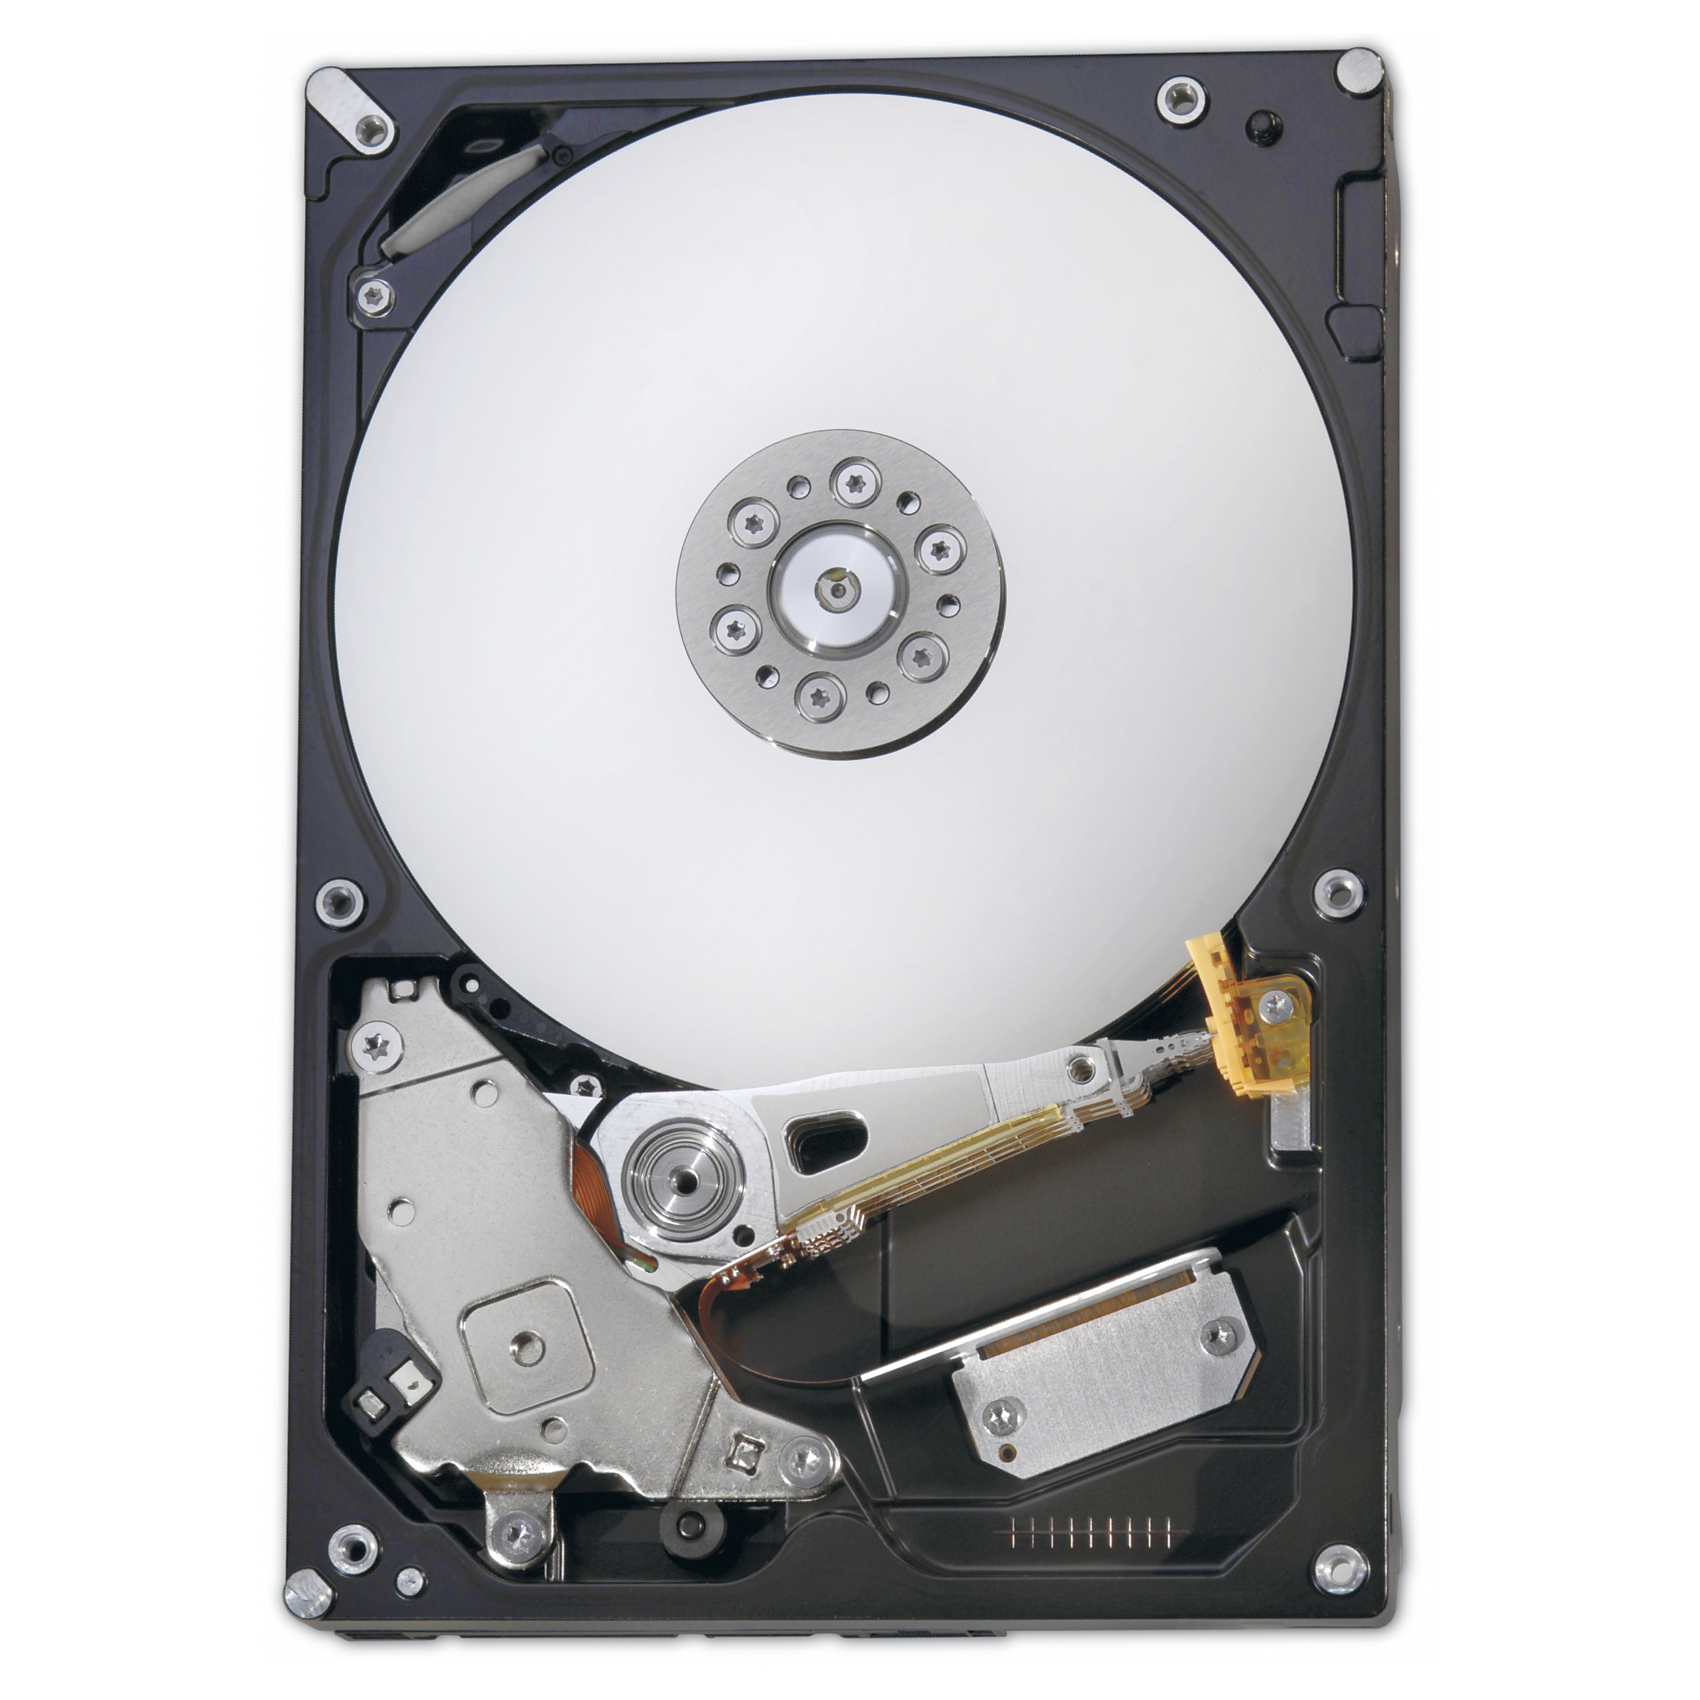 FUJITSU 1TB SATA 6GB/S HDD 1000GB SERIAL ATA III INTERNAL HARD DRIVE